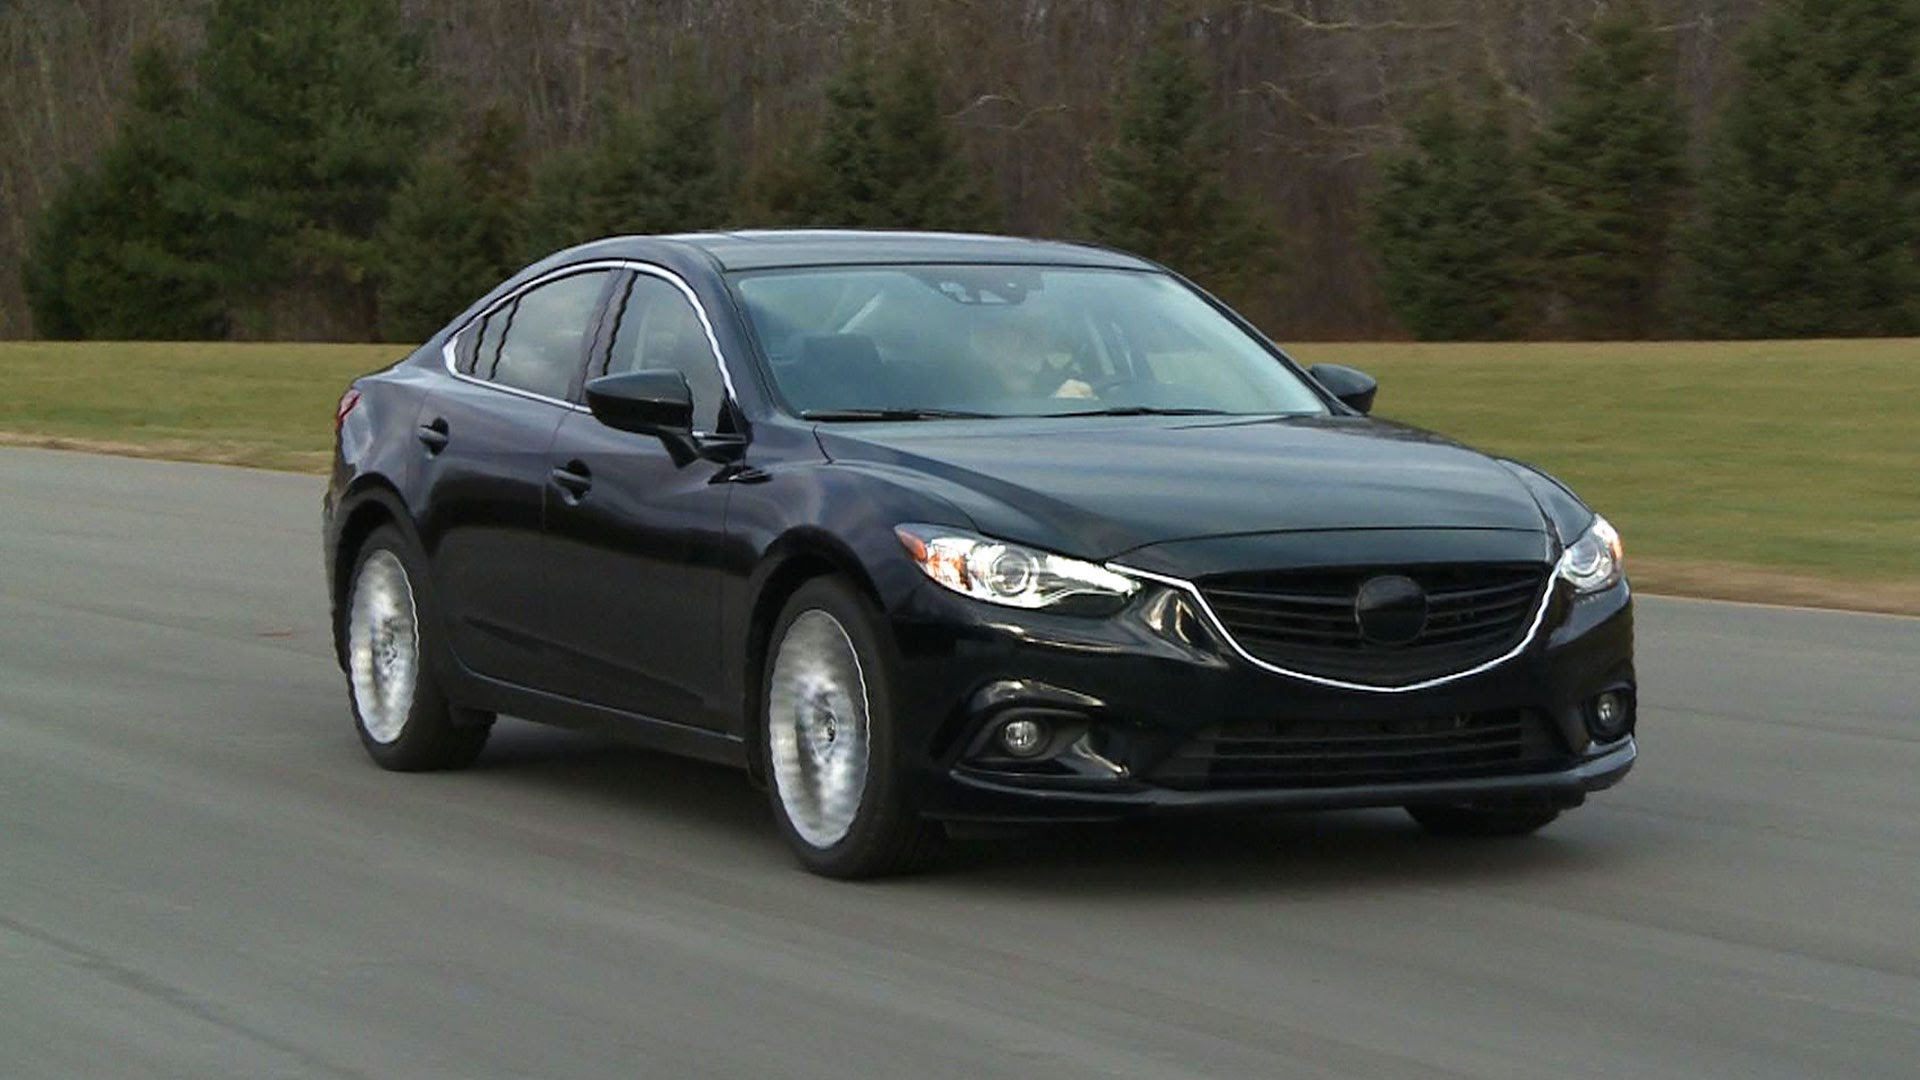 Images of 2014 Mazda 6 | 1920x1080